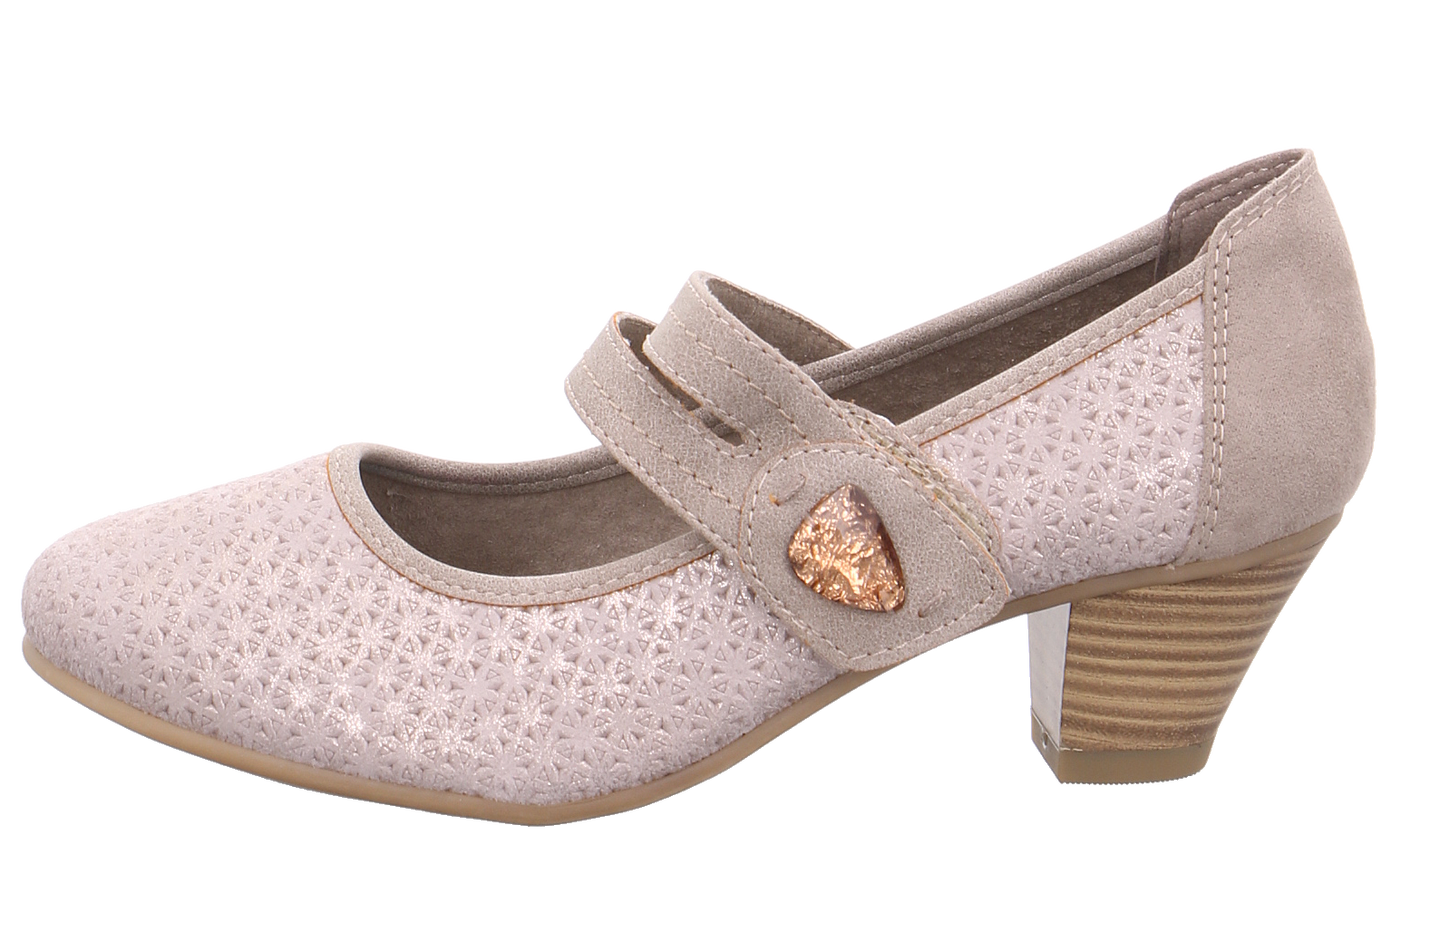 Jana shoes GmbH & Co. KG Pumps taupe Bild1